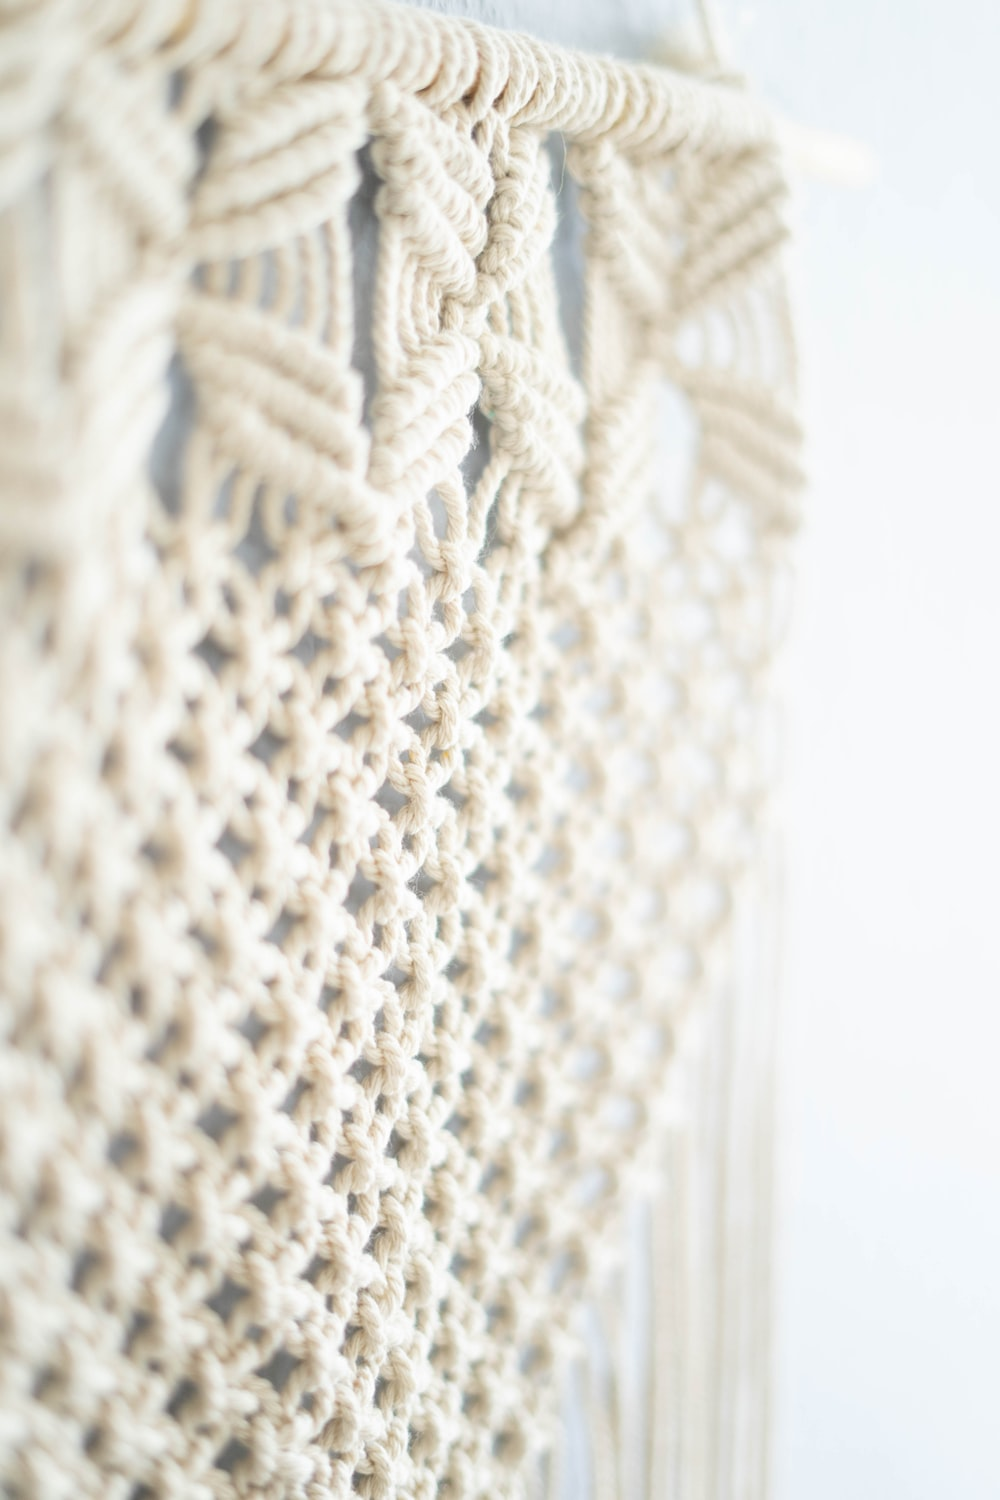 white knit textile in close up photography